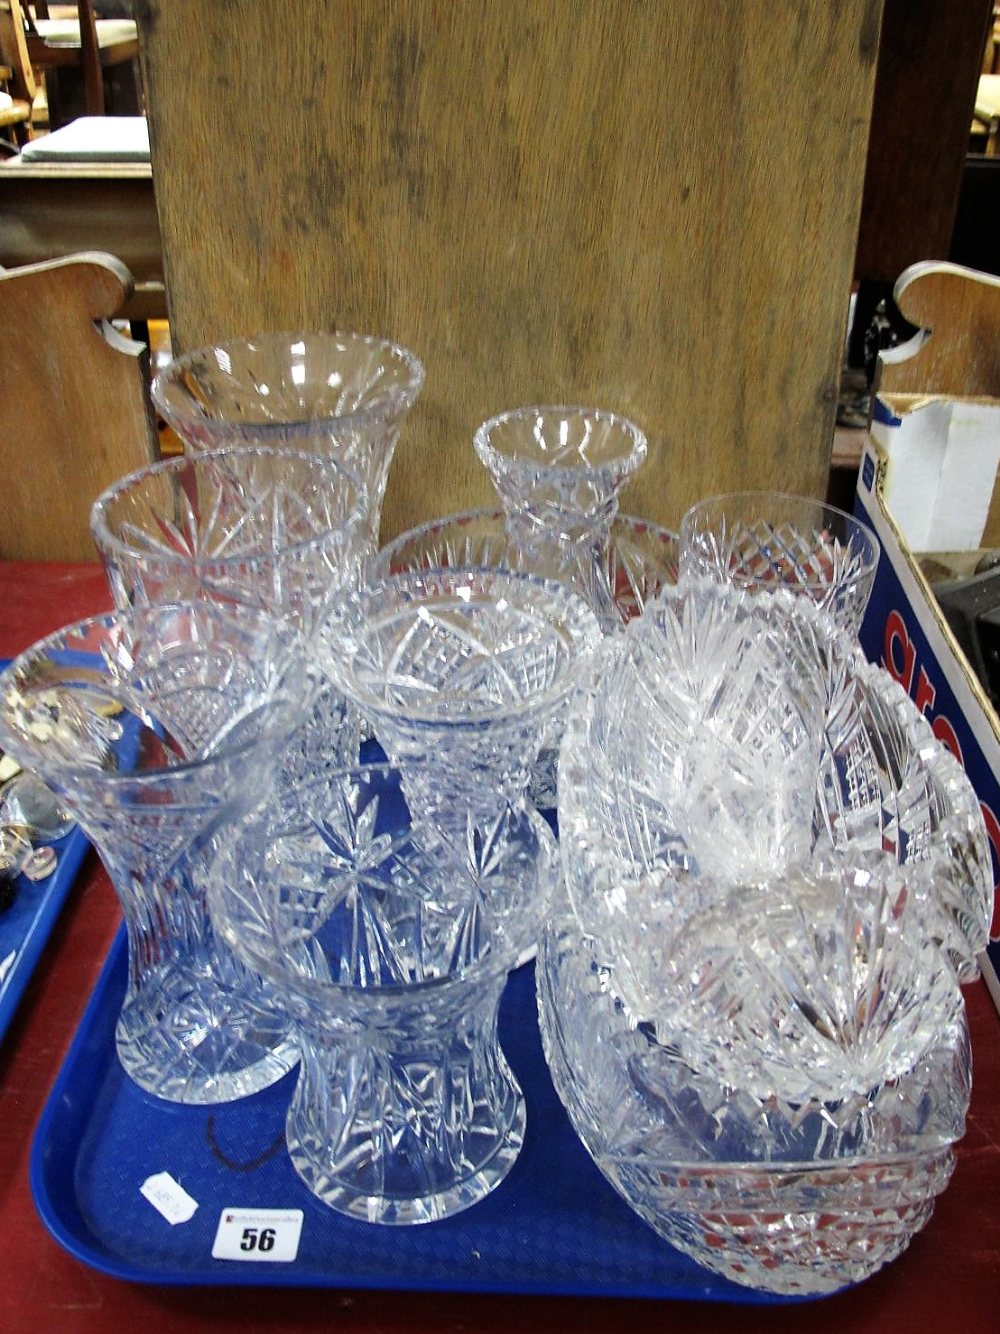 Lot 56 - Lead Crystal Waisted Vases, oval bowls, commemorative goblet, etc:- One Tray